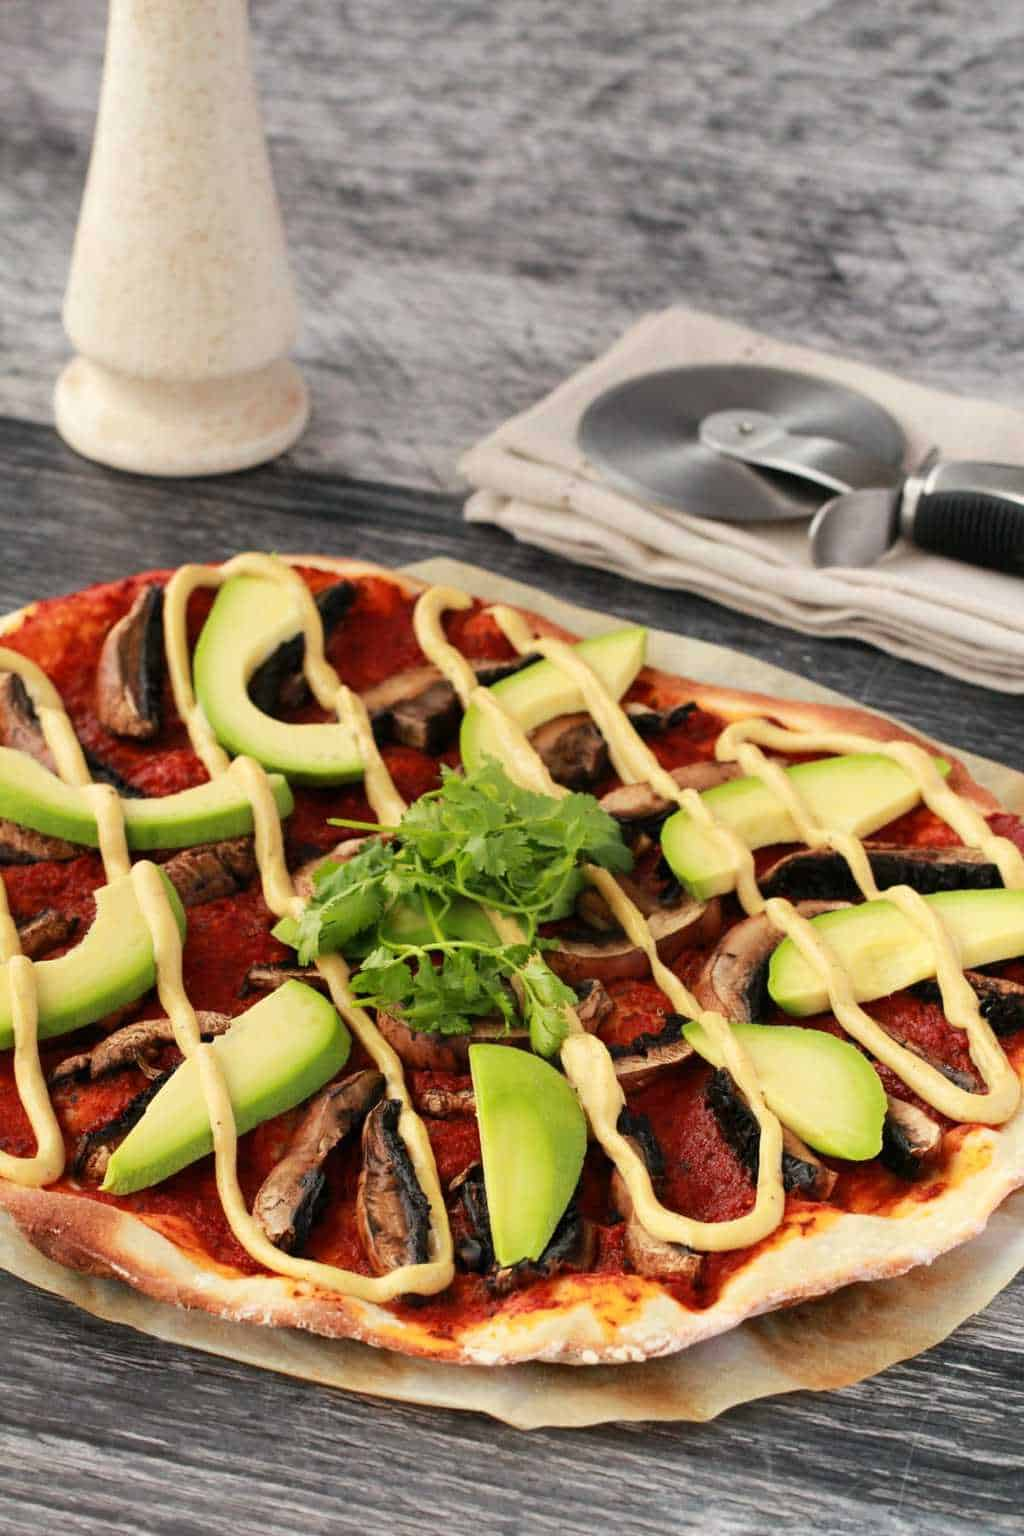 Homemade thin-crust pizza with tomato sauce, black mushrooms, sliced avocado and drizzled cashew cheese, on parchment paper with a napkin and pizza cutter in the background